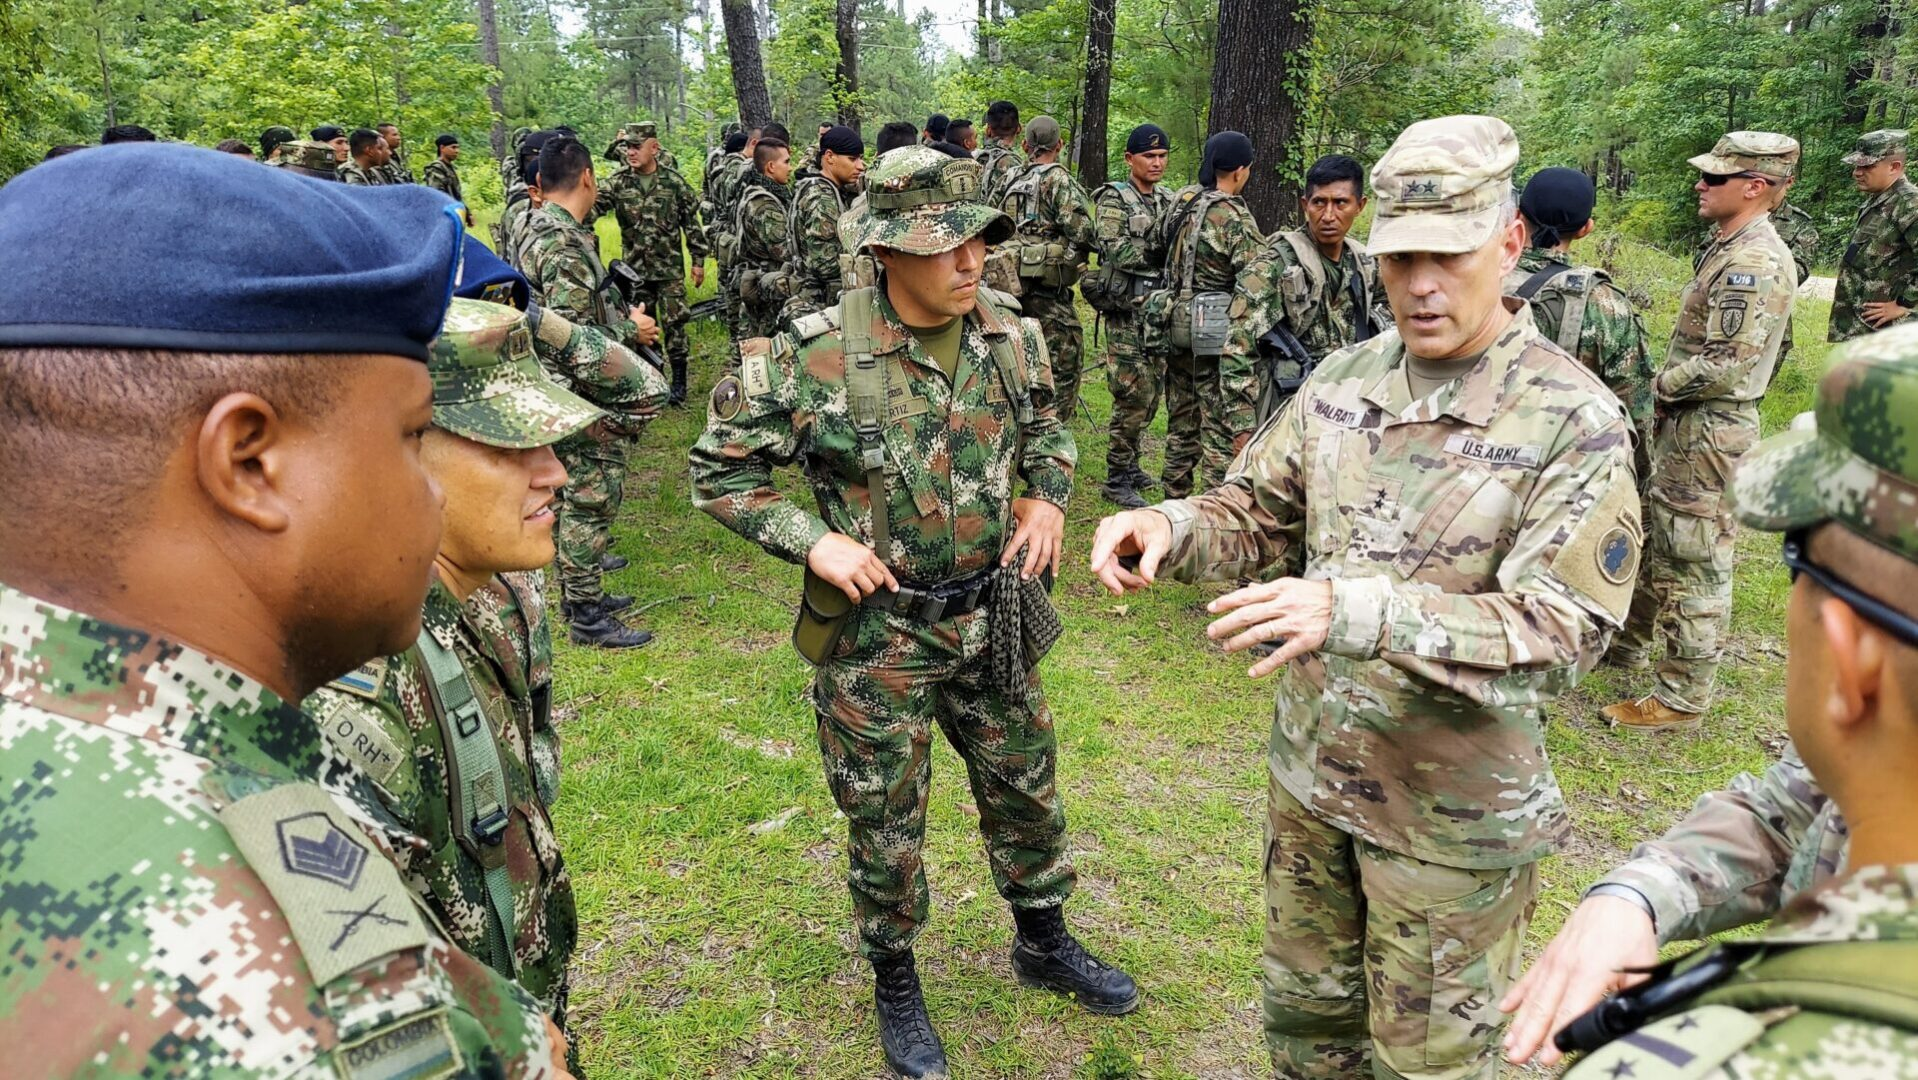 Maj. Gen. Daniel R. Walrath, right, U.S. Army South commanding general, greets Colombian soldiers during a visit to the Joint Readiness Training Center at Fort Polk, La., June 9, 2021. The Colombian Army is the second South American army to conduct bilateral training with a U.S. Army unit as part of a JRTC rotation.